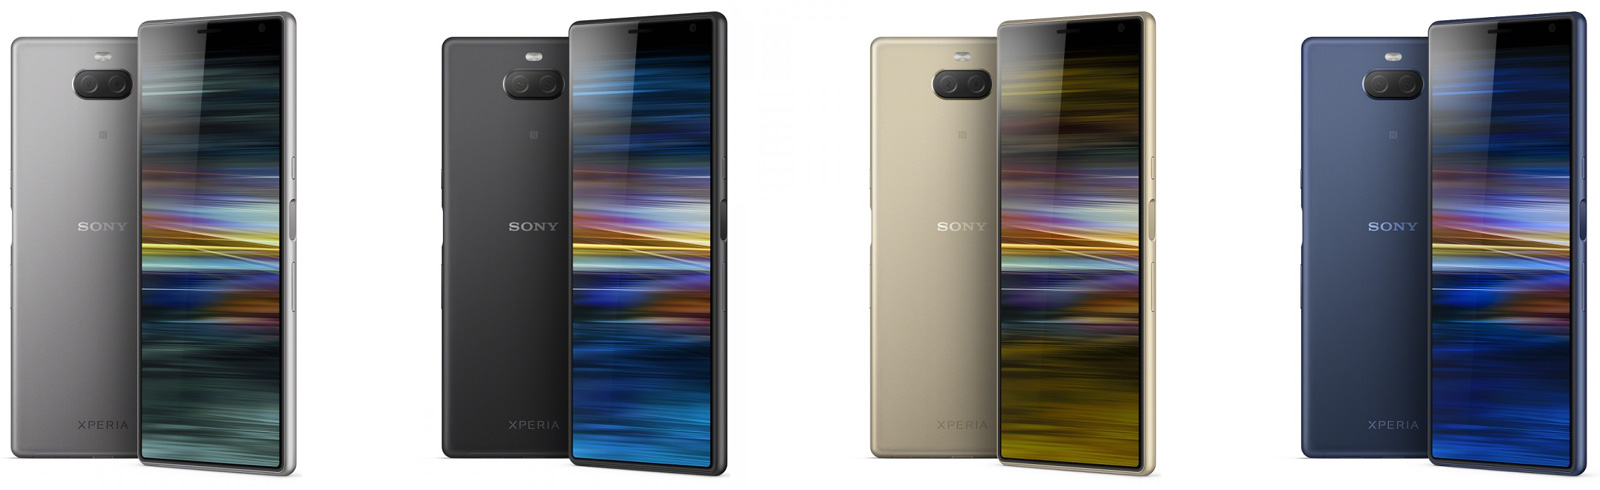 Sony unveils the Xperia 10 and Xperia 10 Plus along with the Xperia L3